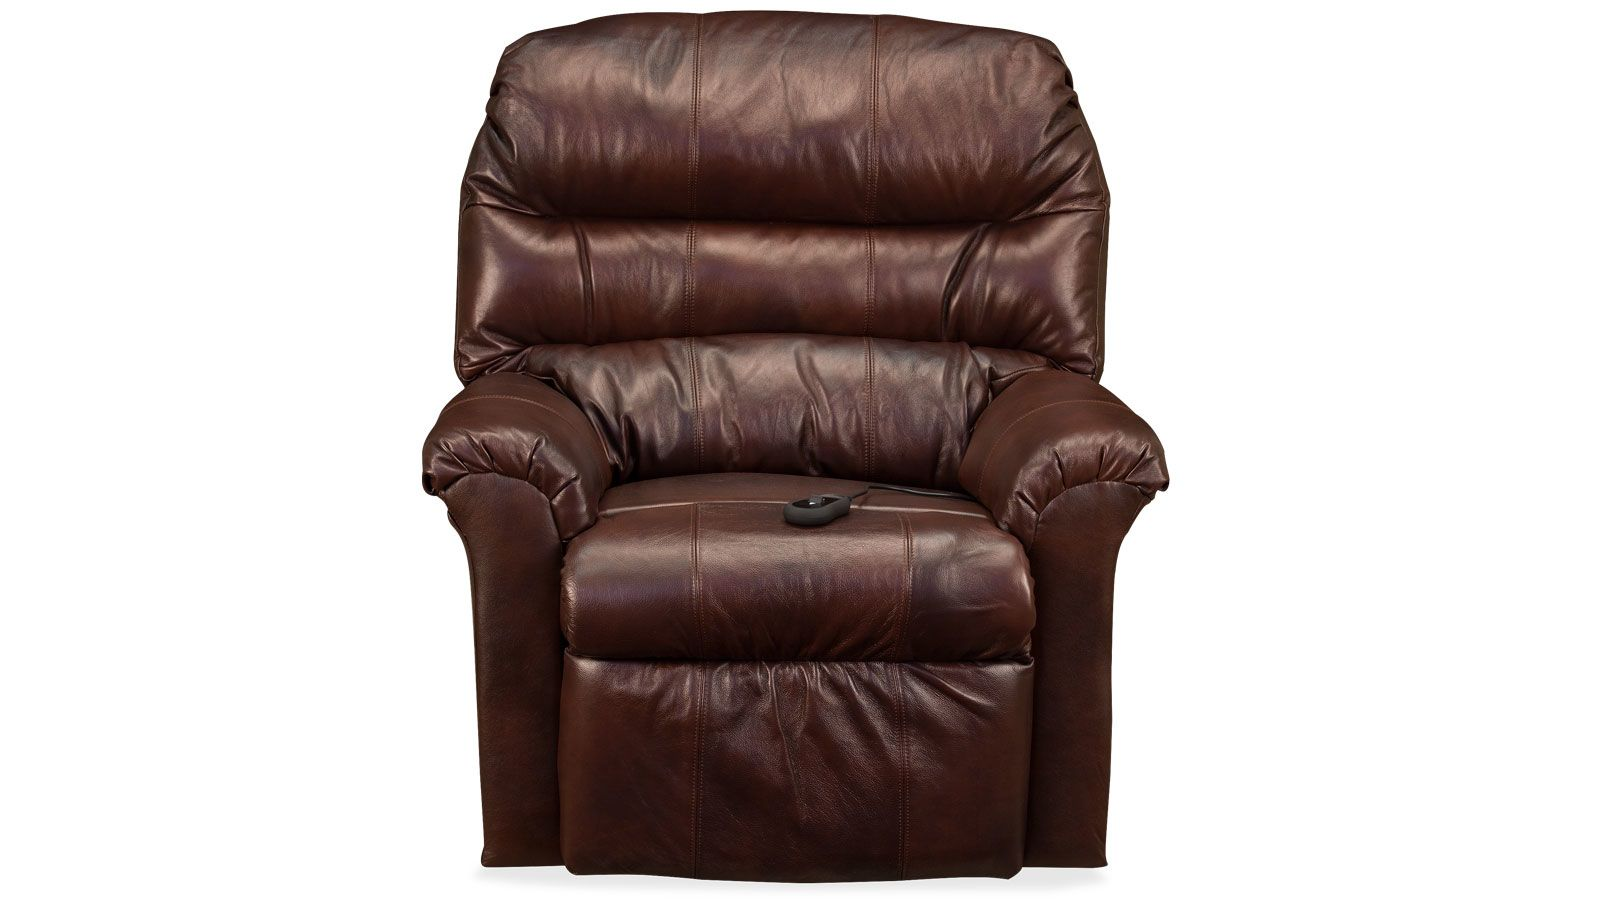 Brown Leather Match Power Lift Chair